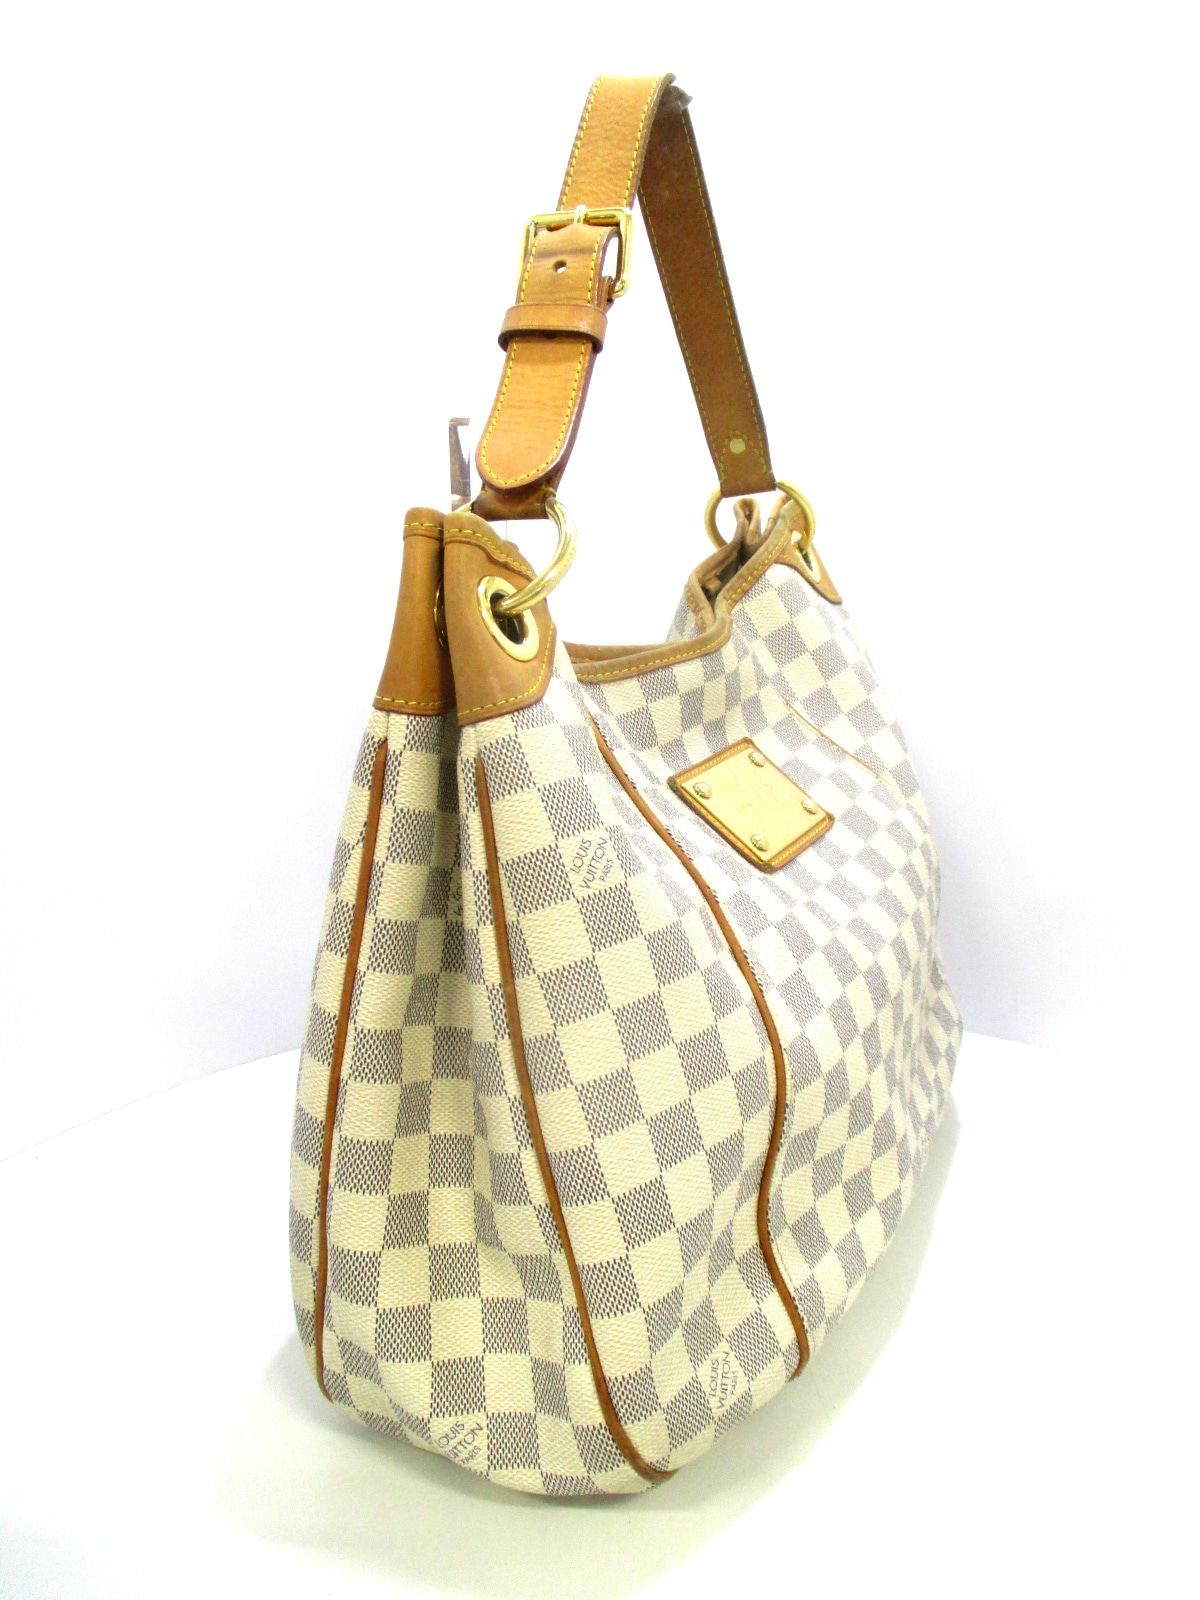 LOUIS VUITTON(ルイヴィトン)のガリエラPM